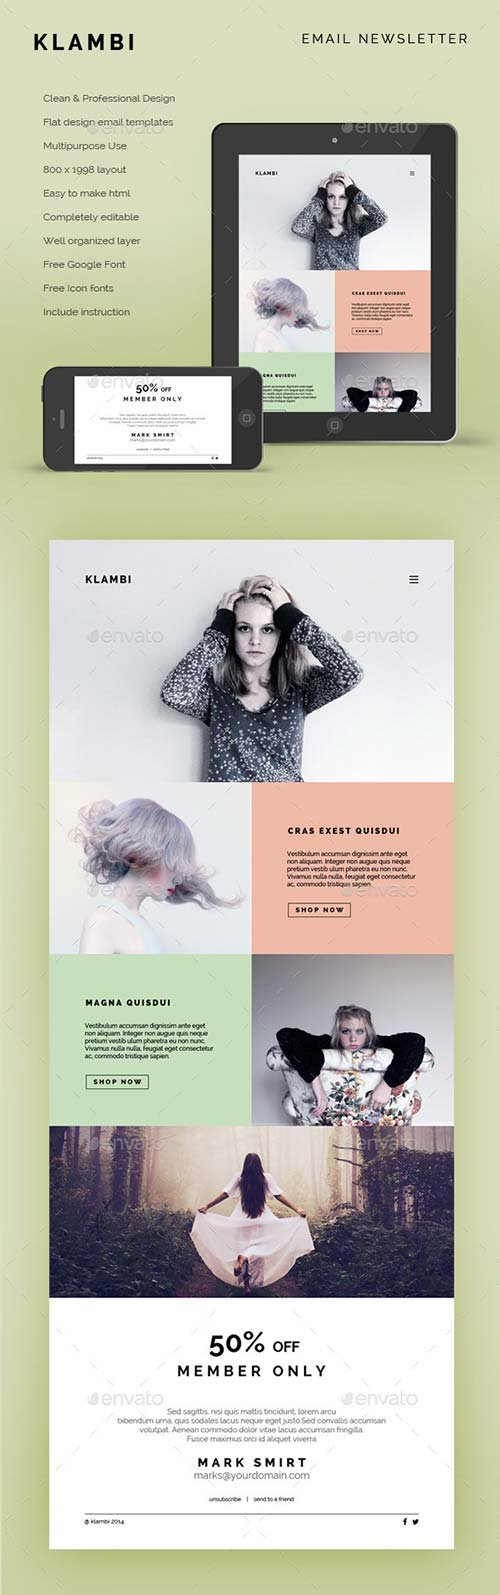 GraphicRiver Email Newsletter Klambi